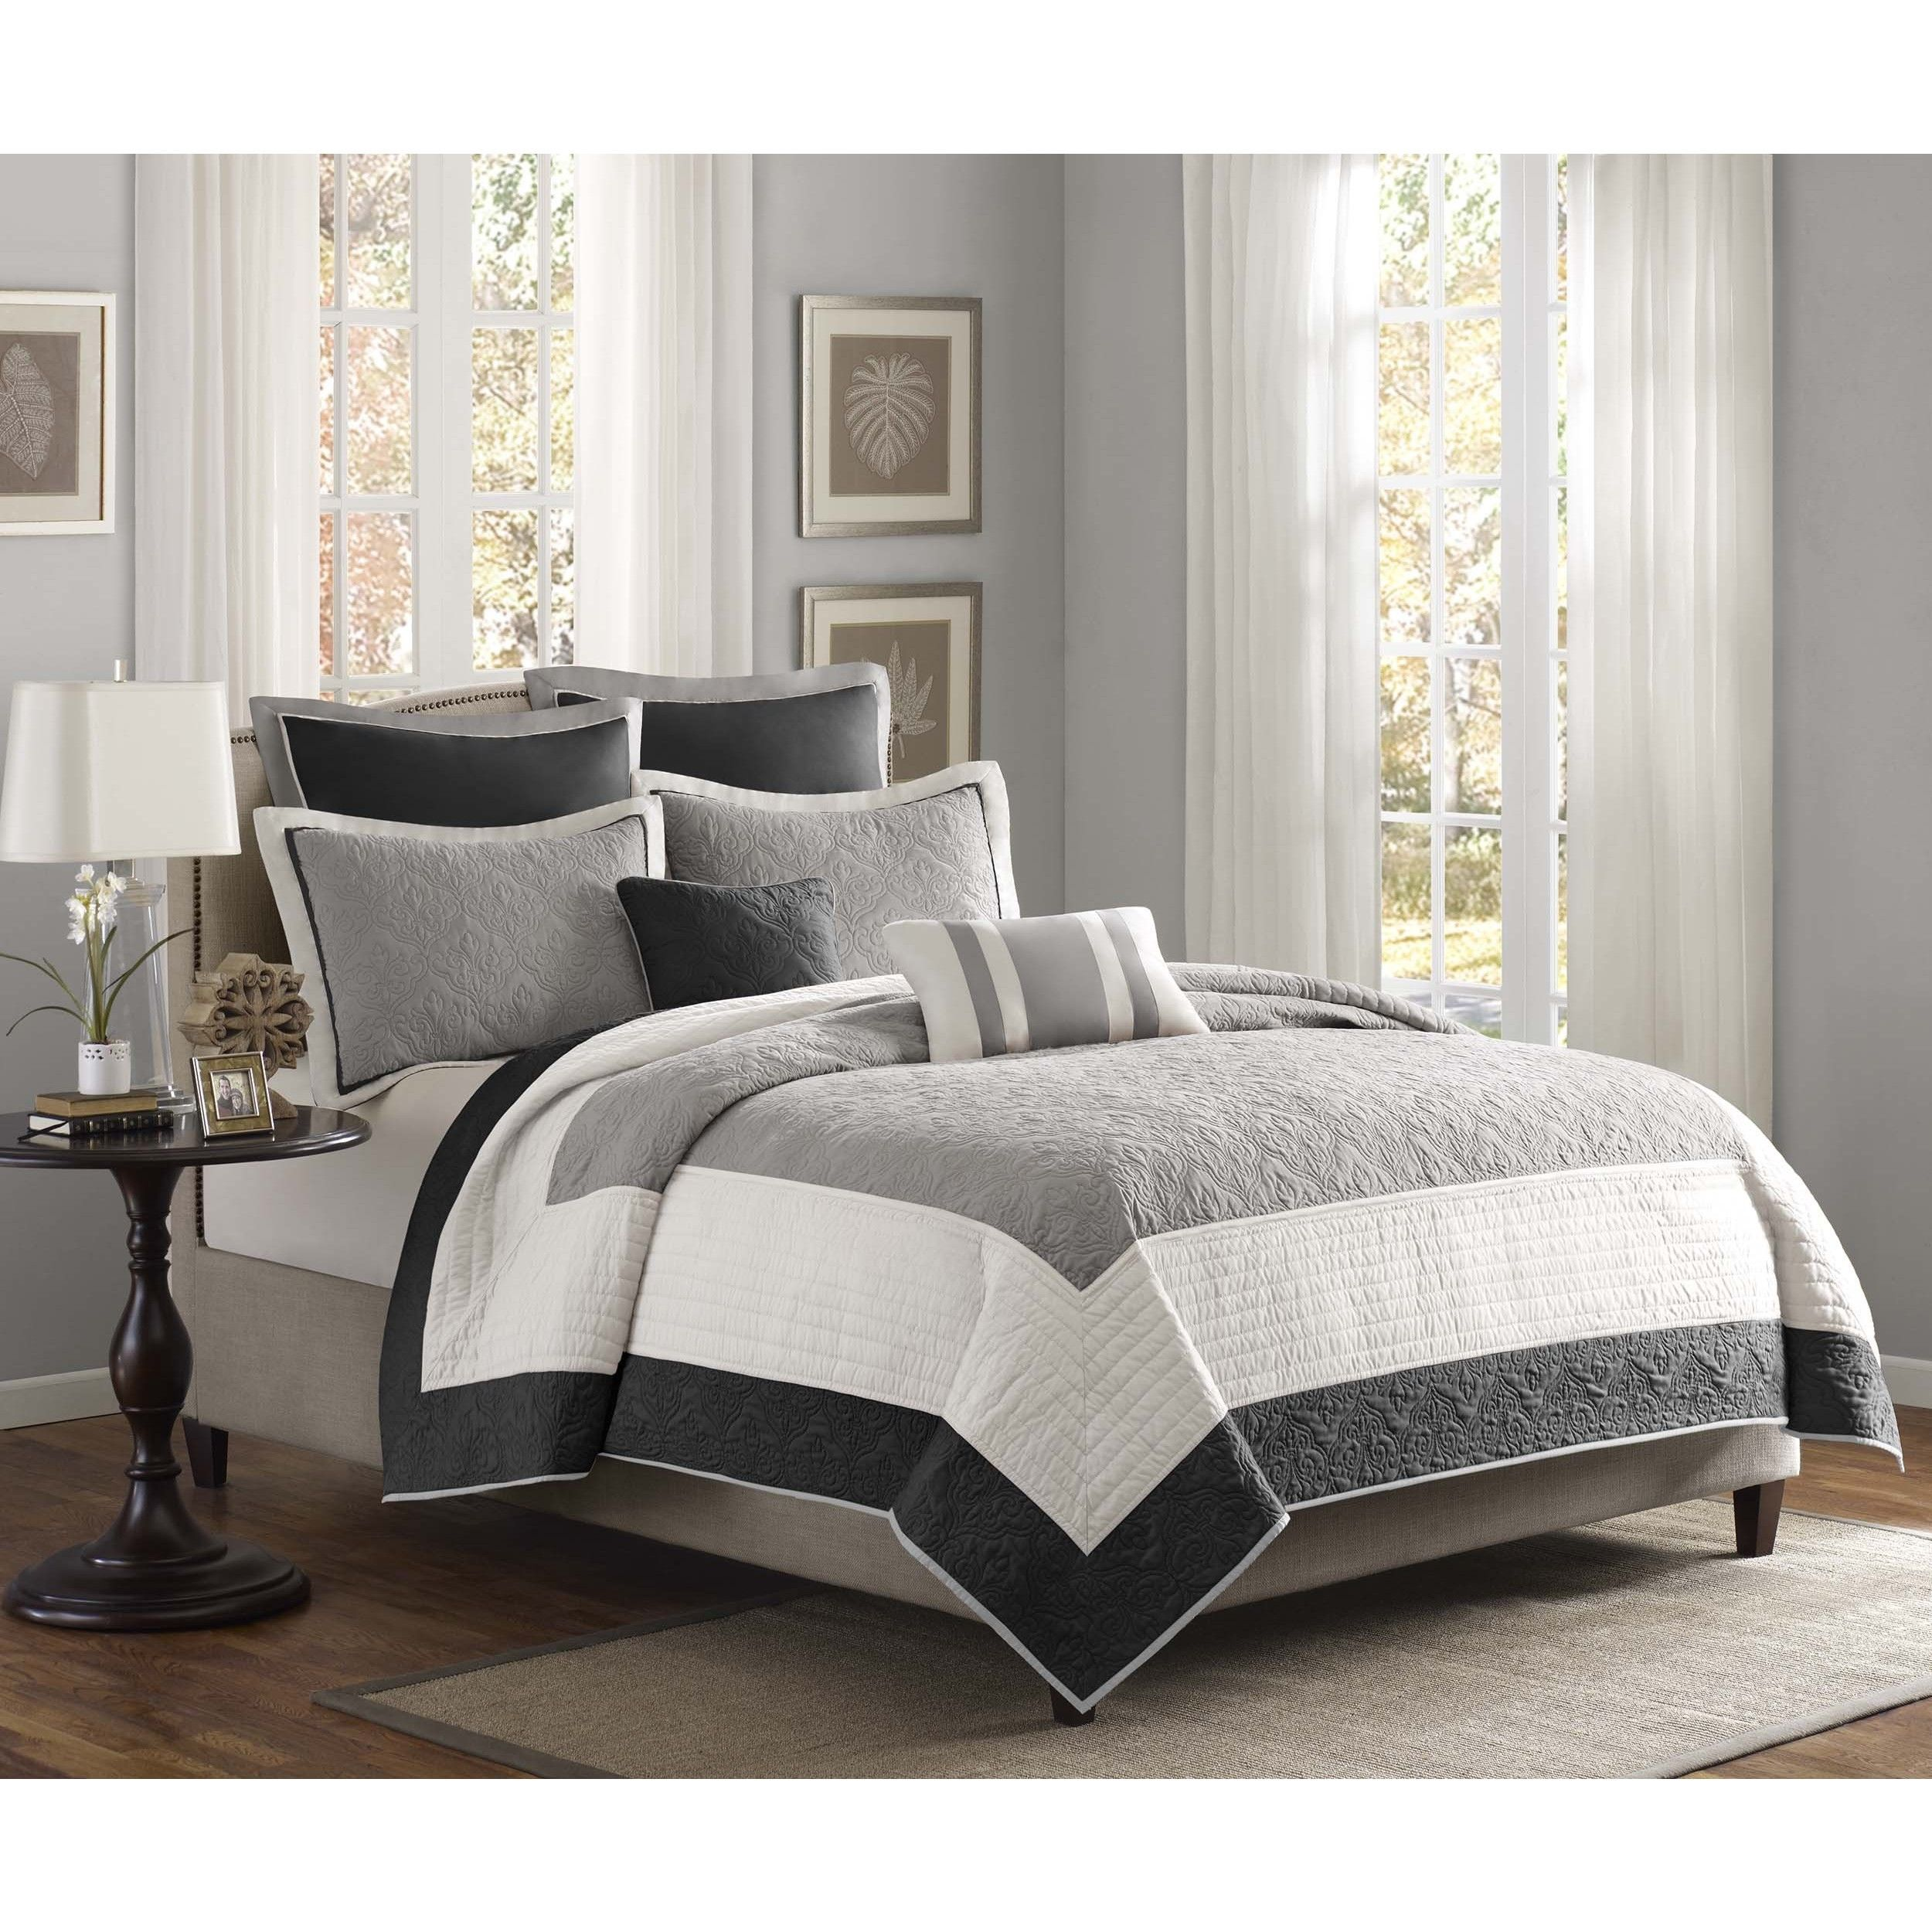 The Liverpool coverlet set is set in